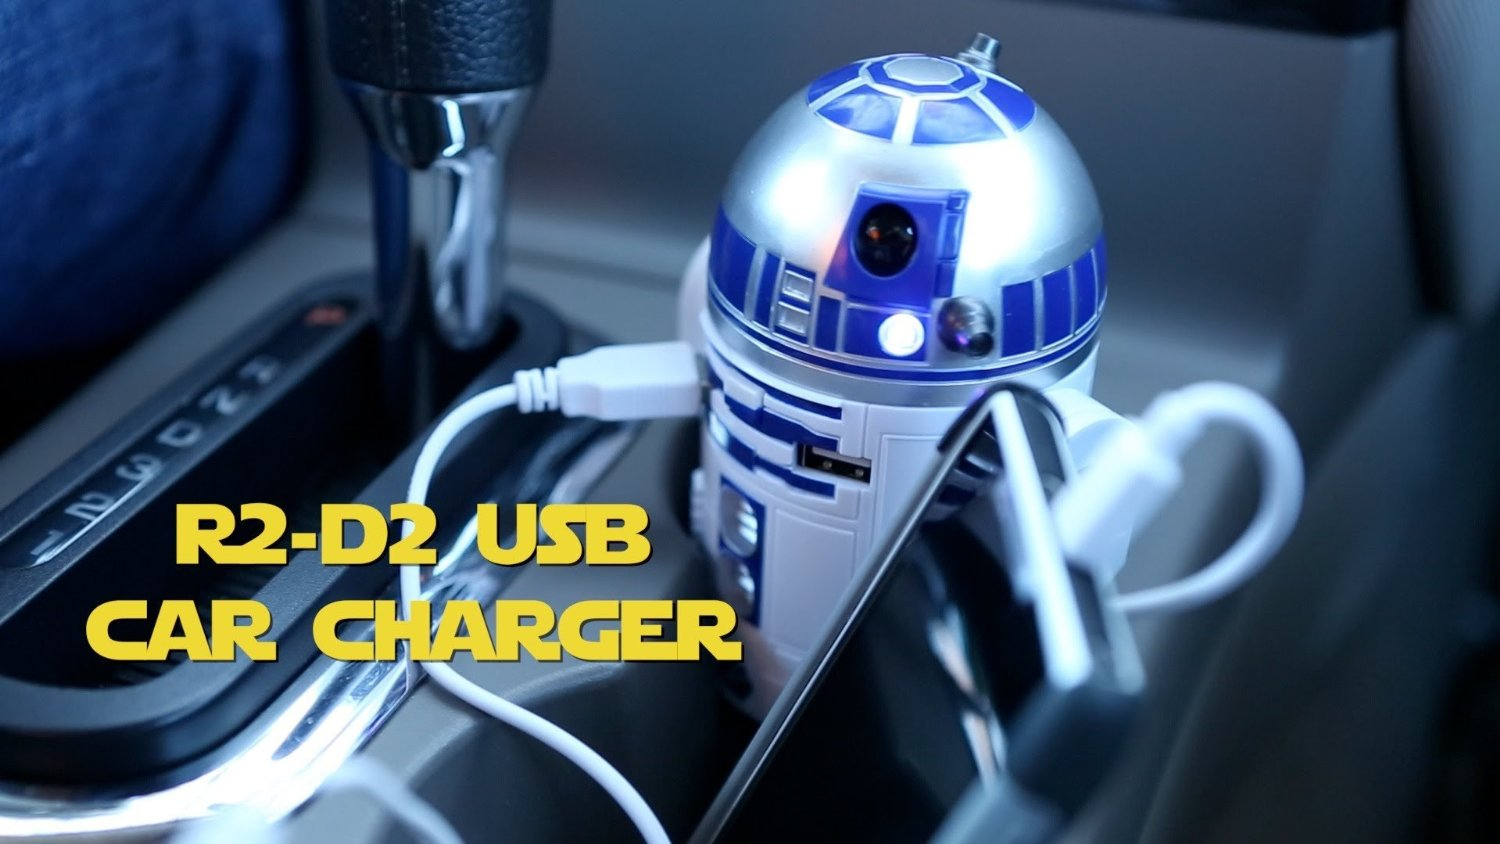 R2-D2 USB Car Charger Star Wars Gift Idea